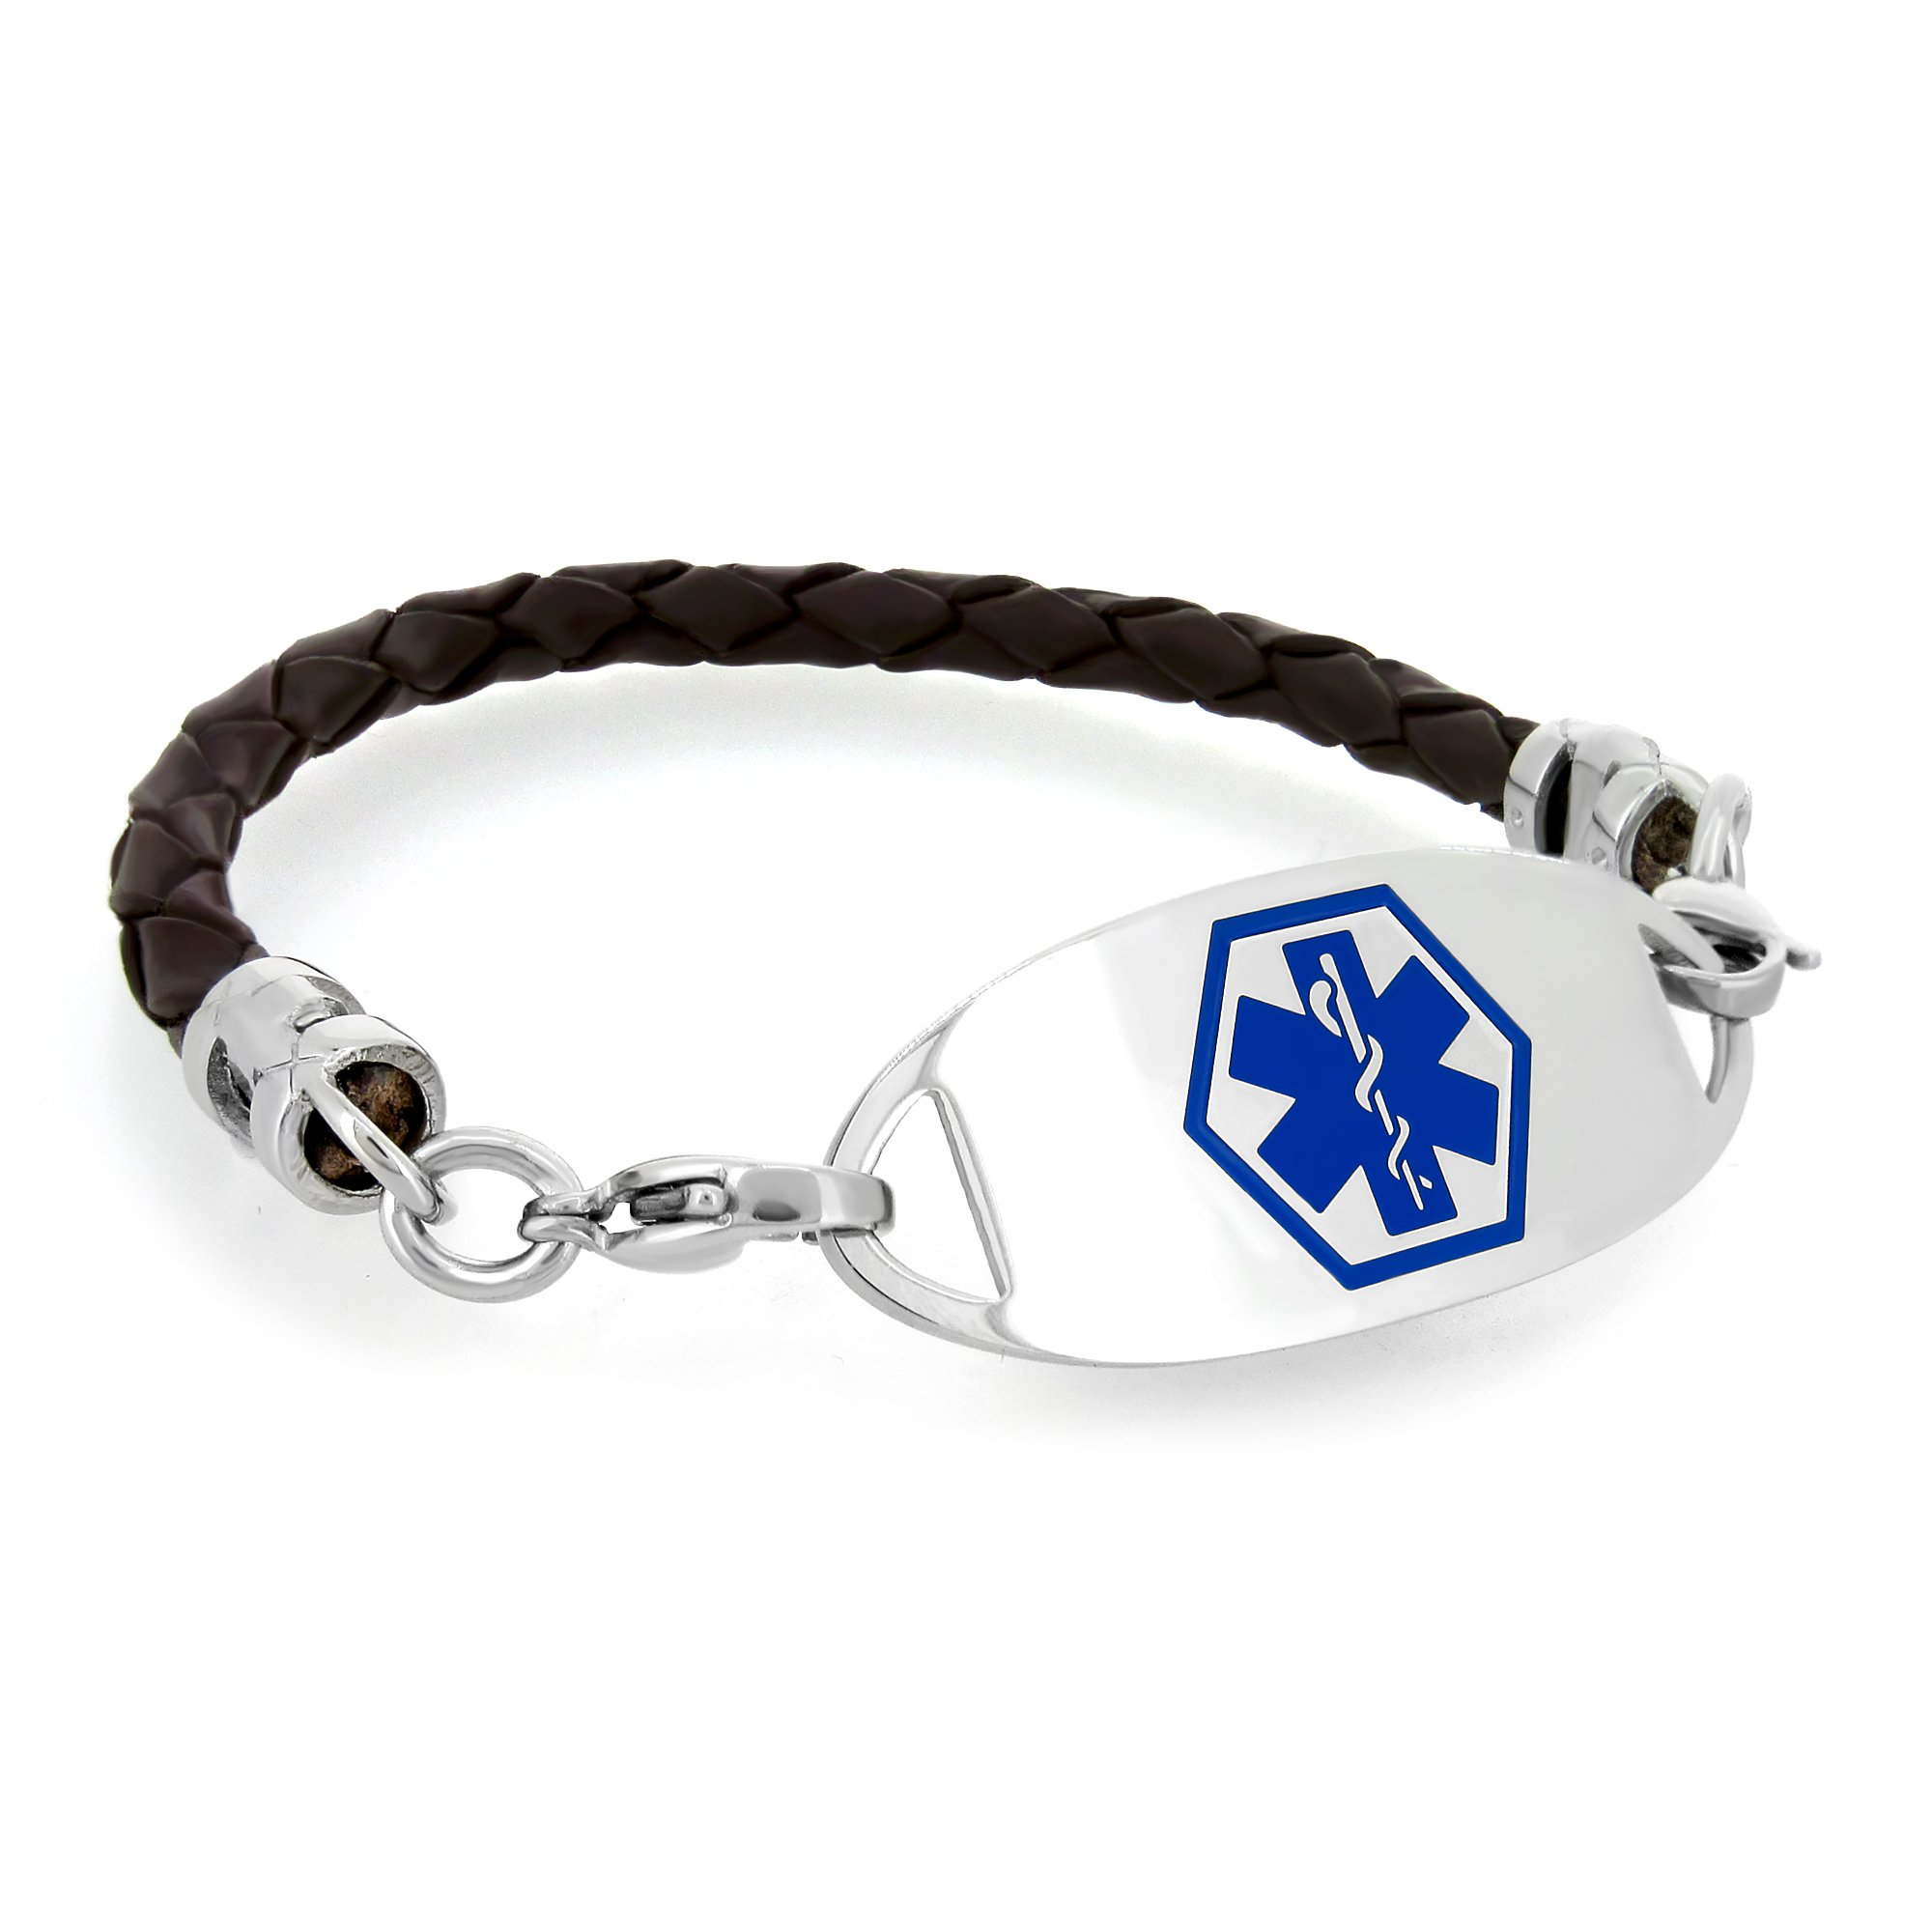 Blue Color Medical Alert Bracelet